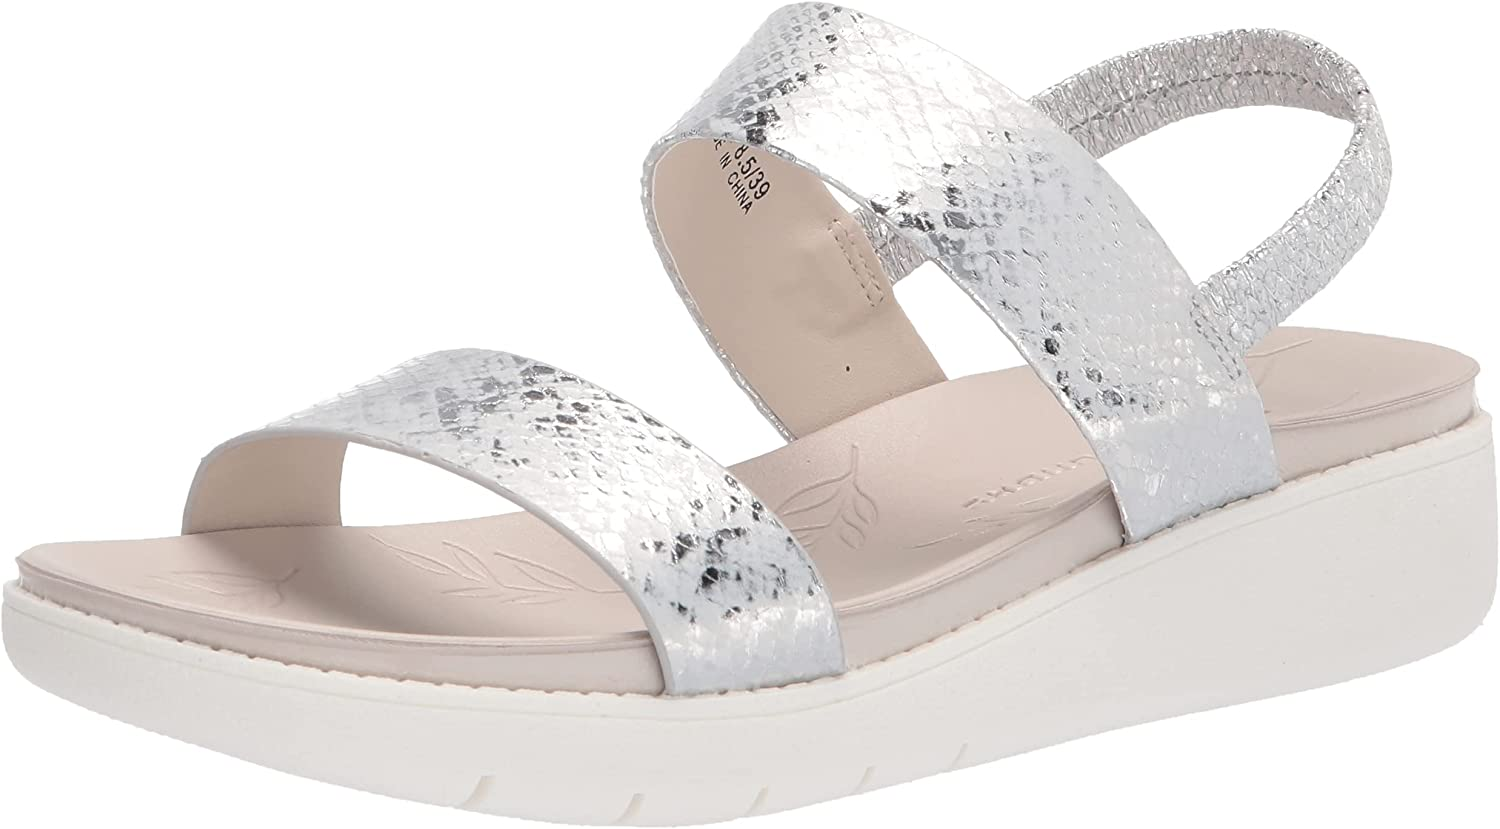 CL by Chinese Laundry Sandal Elegant Women's Sport Catching Ranking TOP19